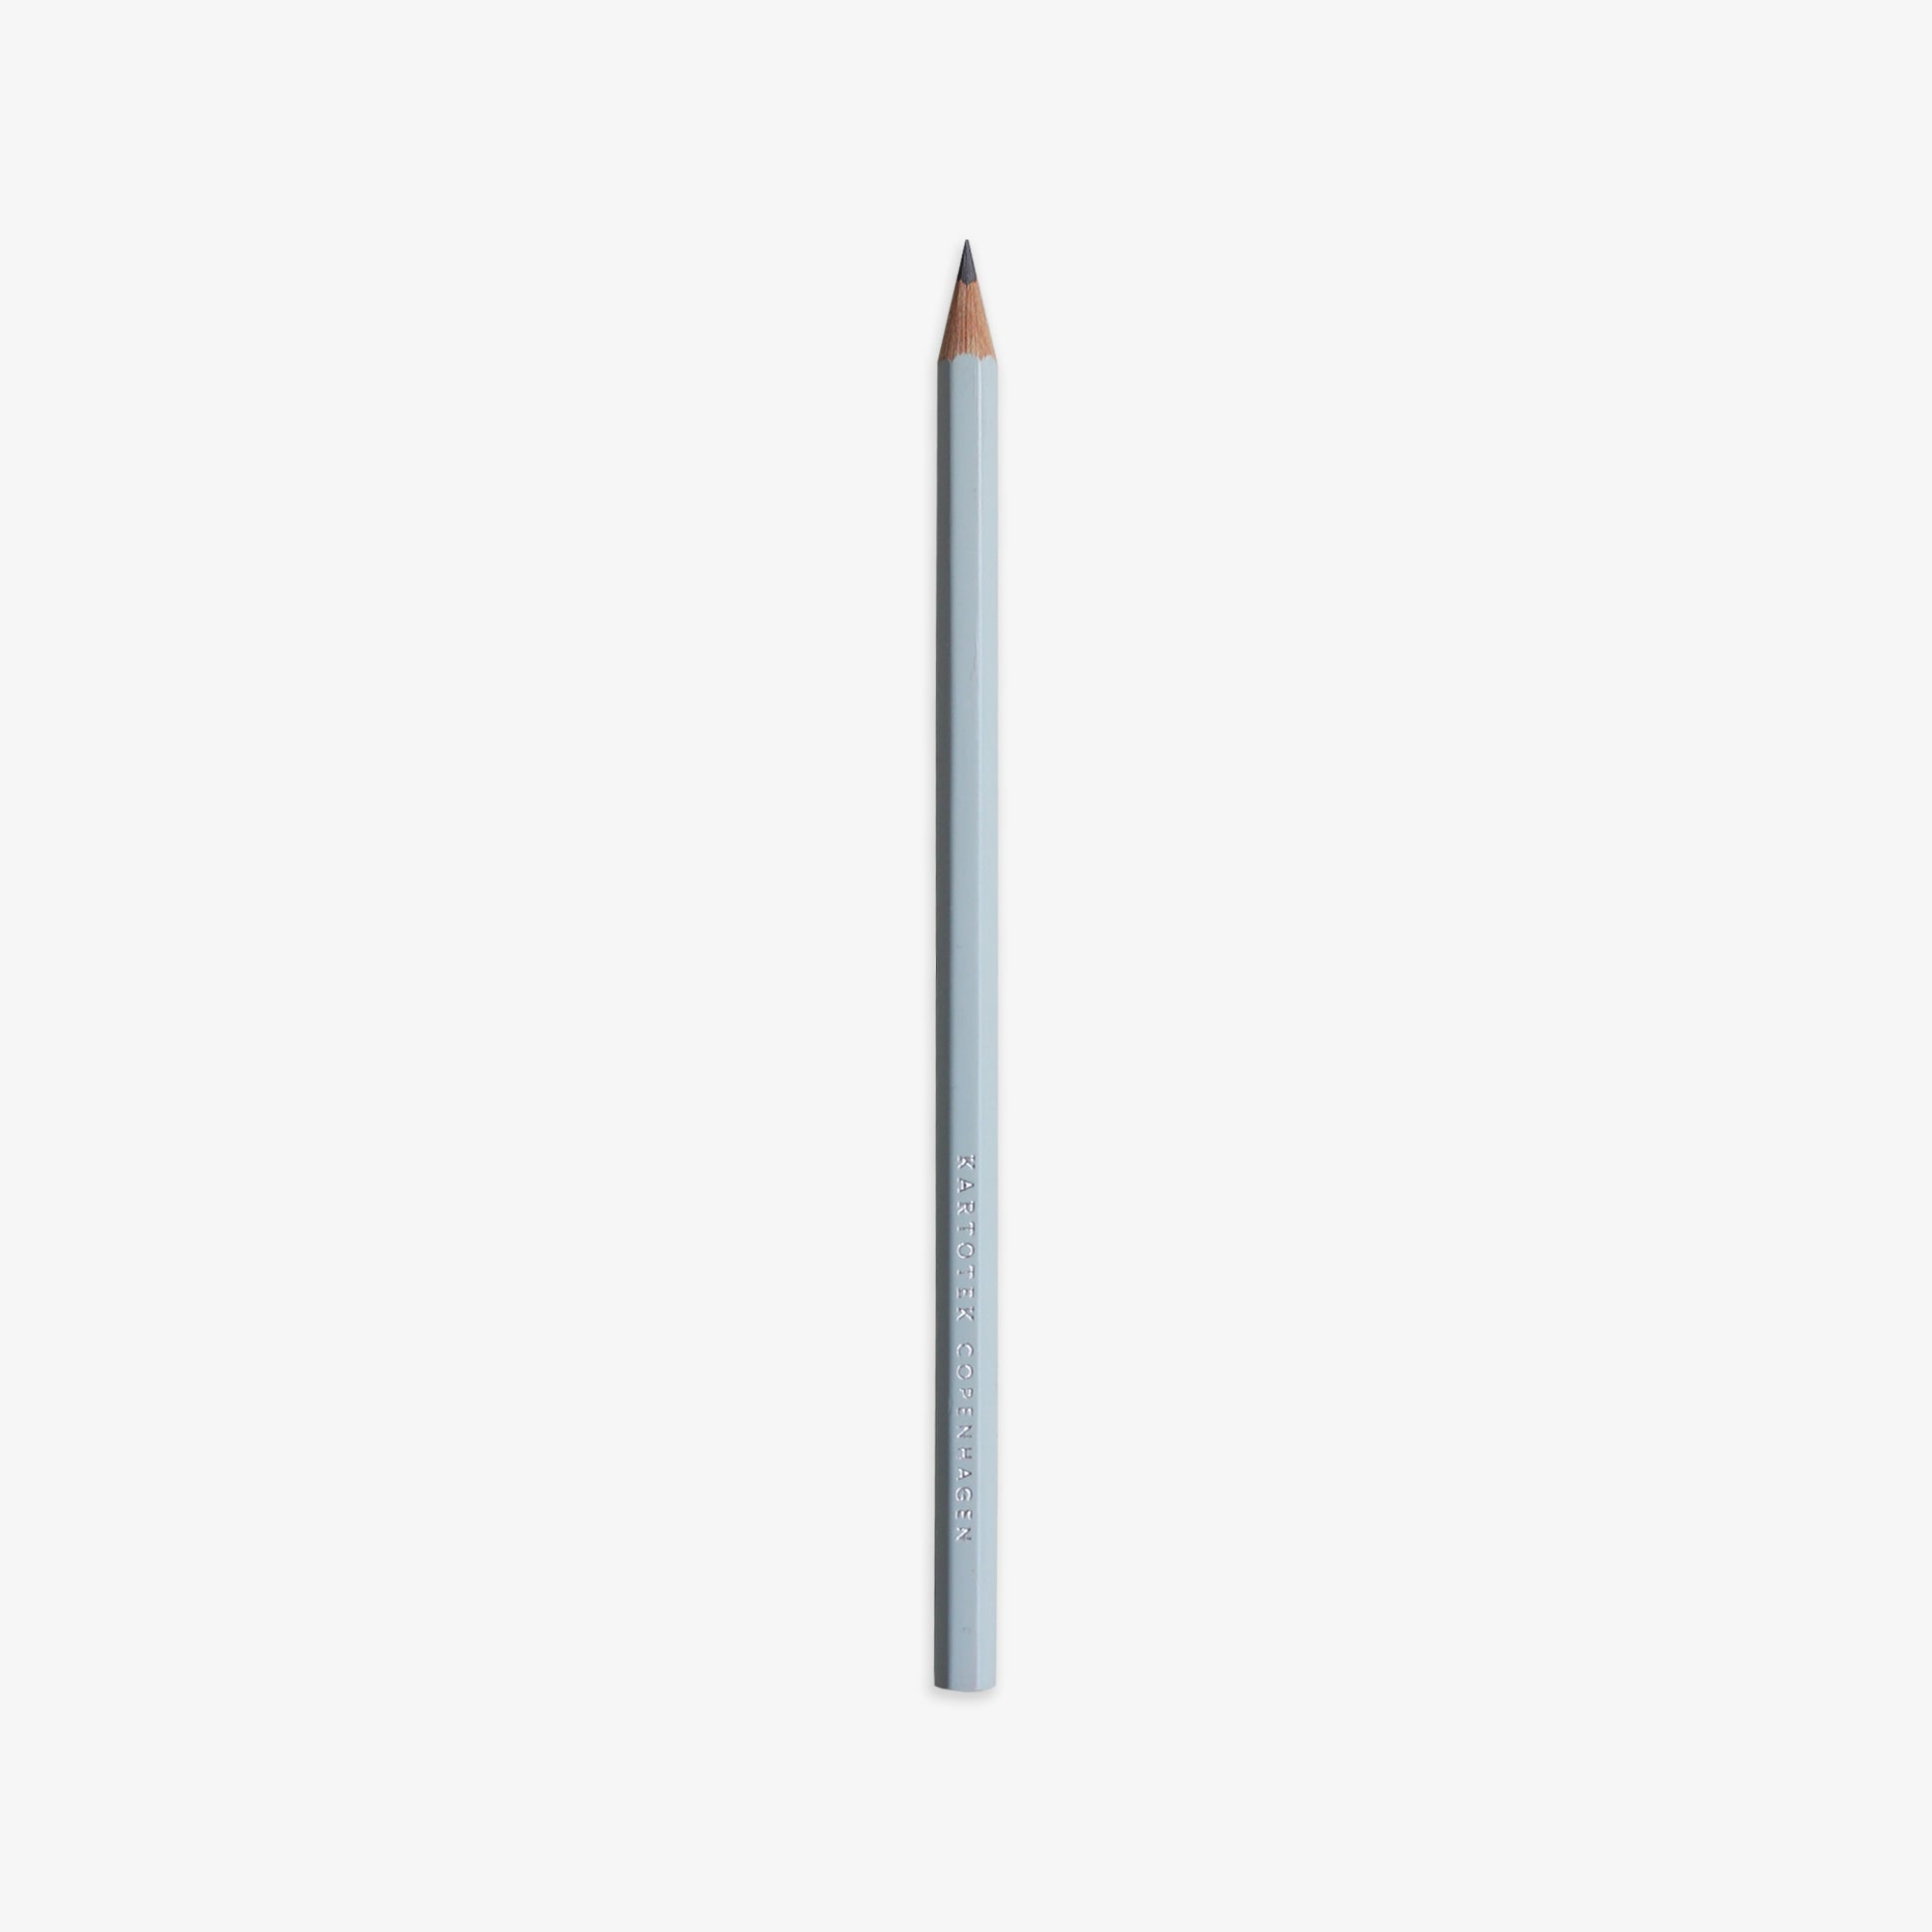 CEDAR WOOD PENCIL // LIGHT BLUE